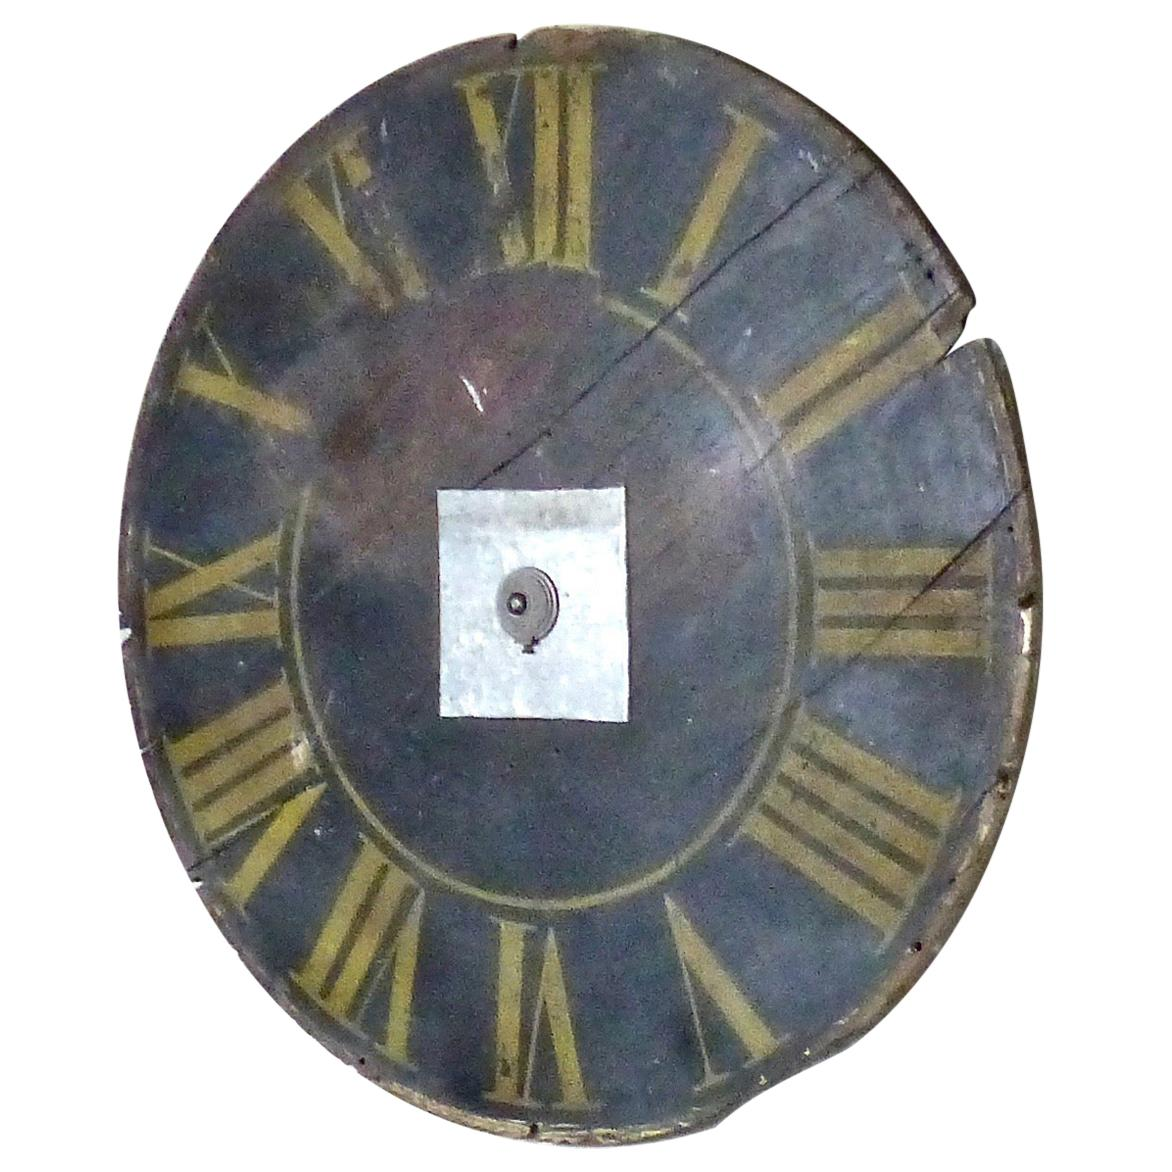 19th Century French Wooden Clock Face